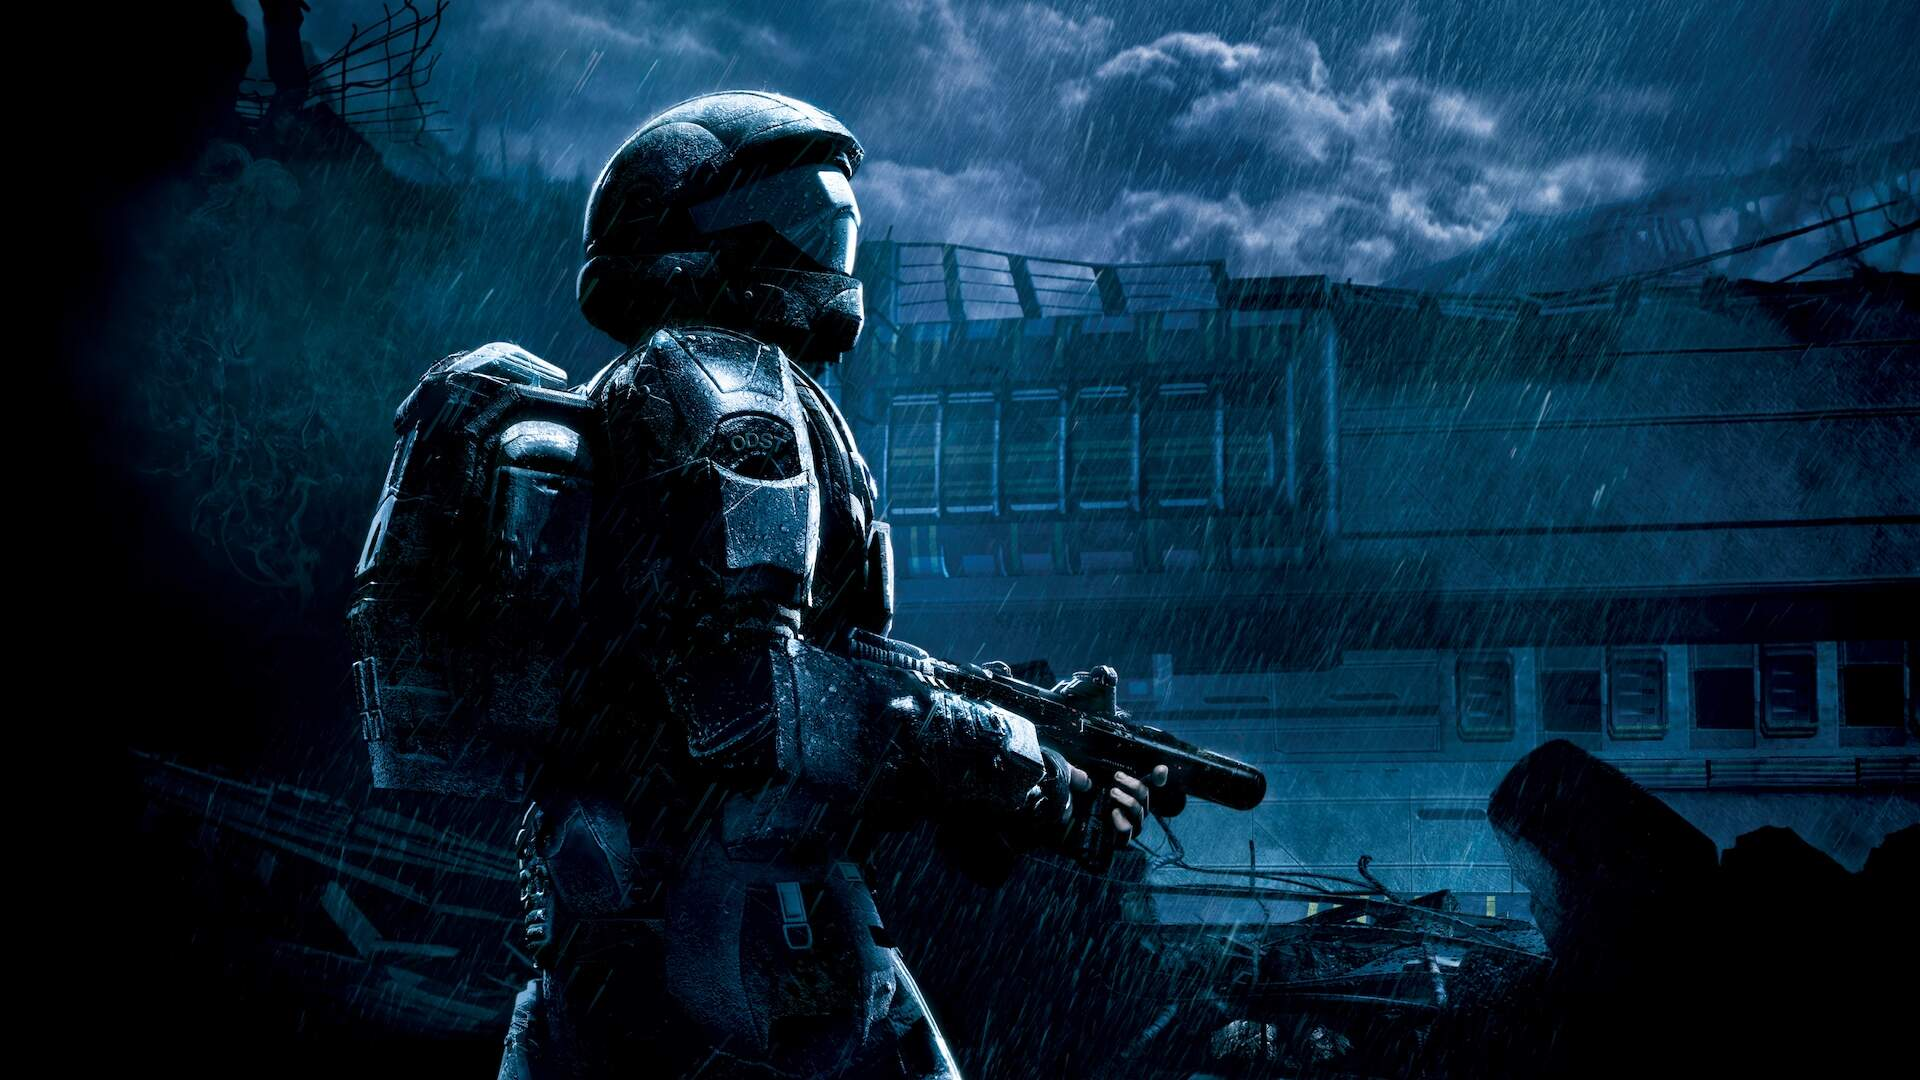 Halo 3: ODST Arrives on PC Next Week Along With Firefight for Xbox One